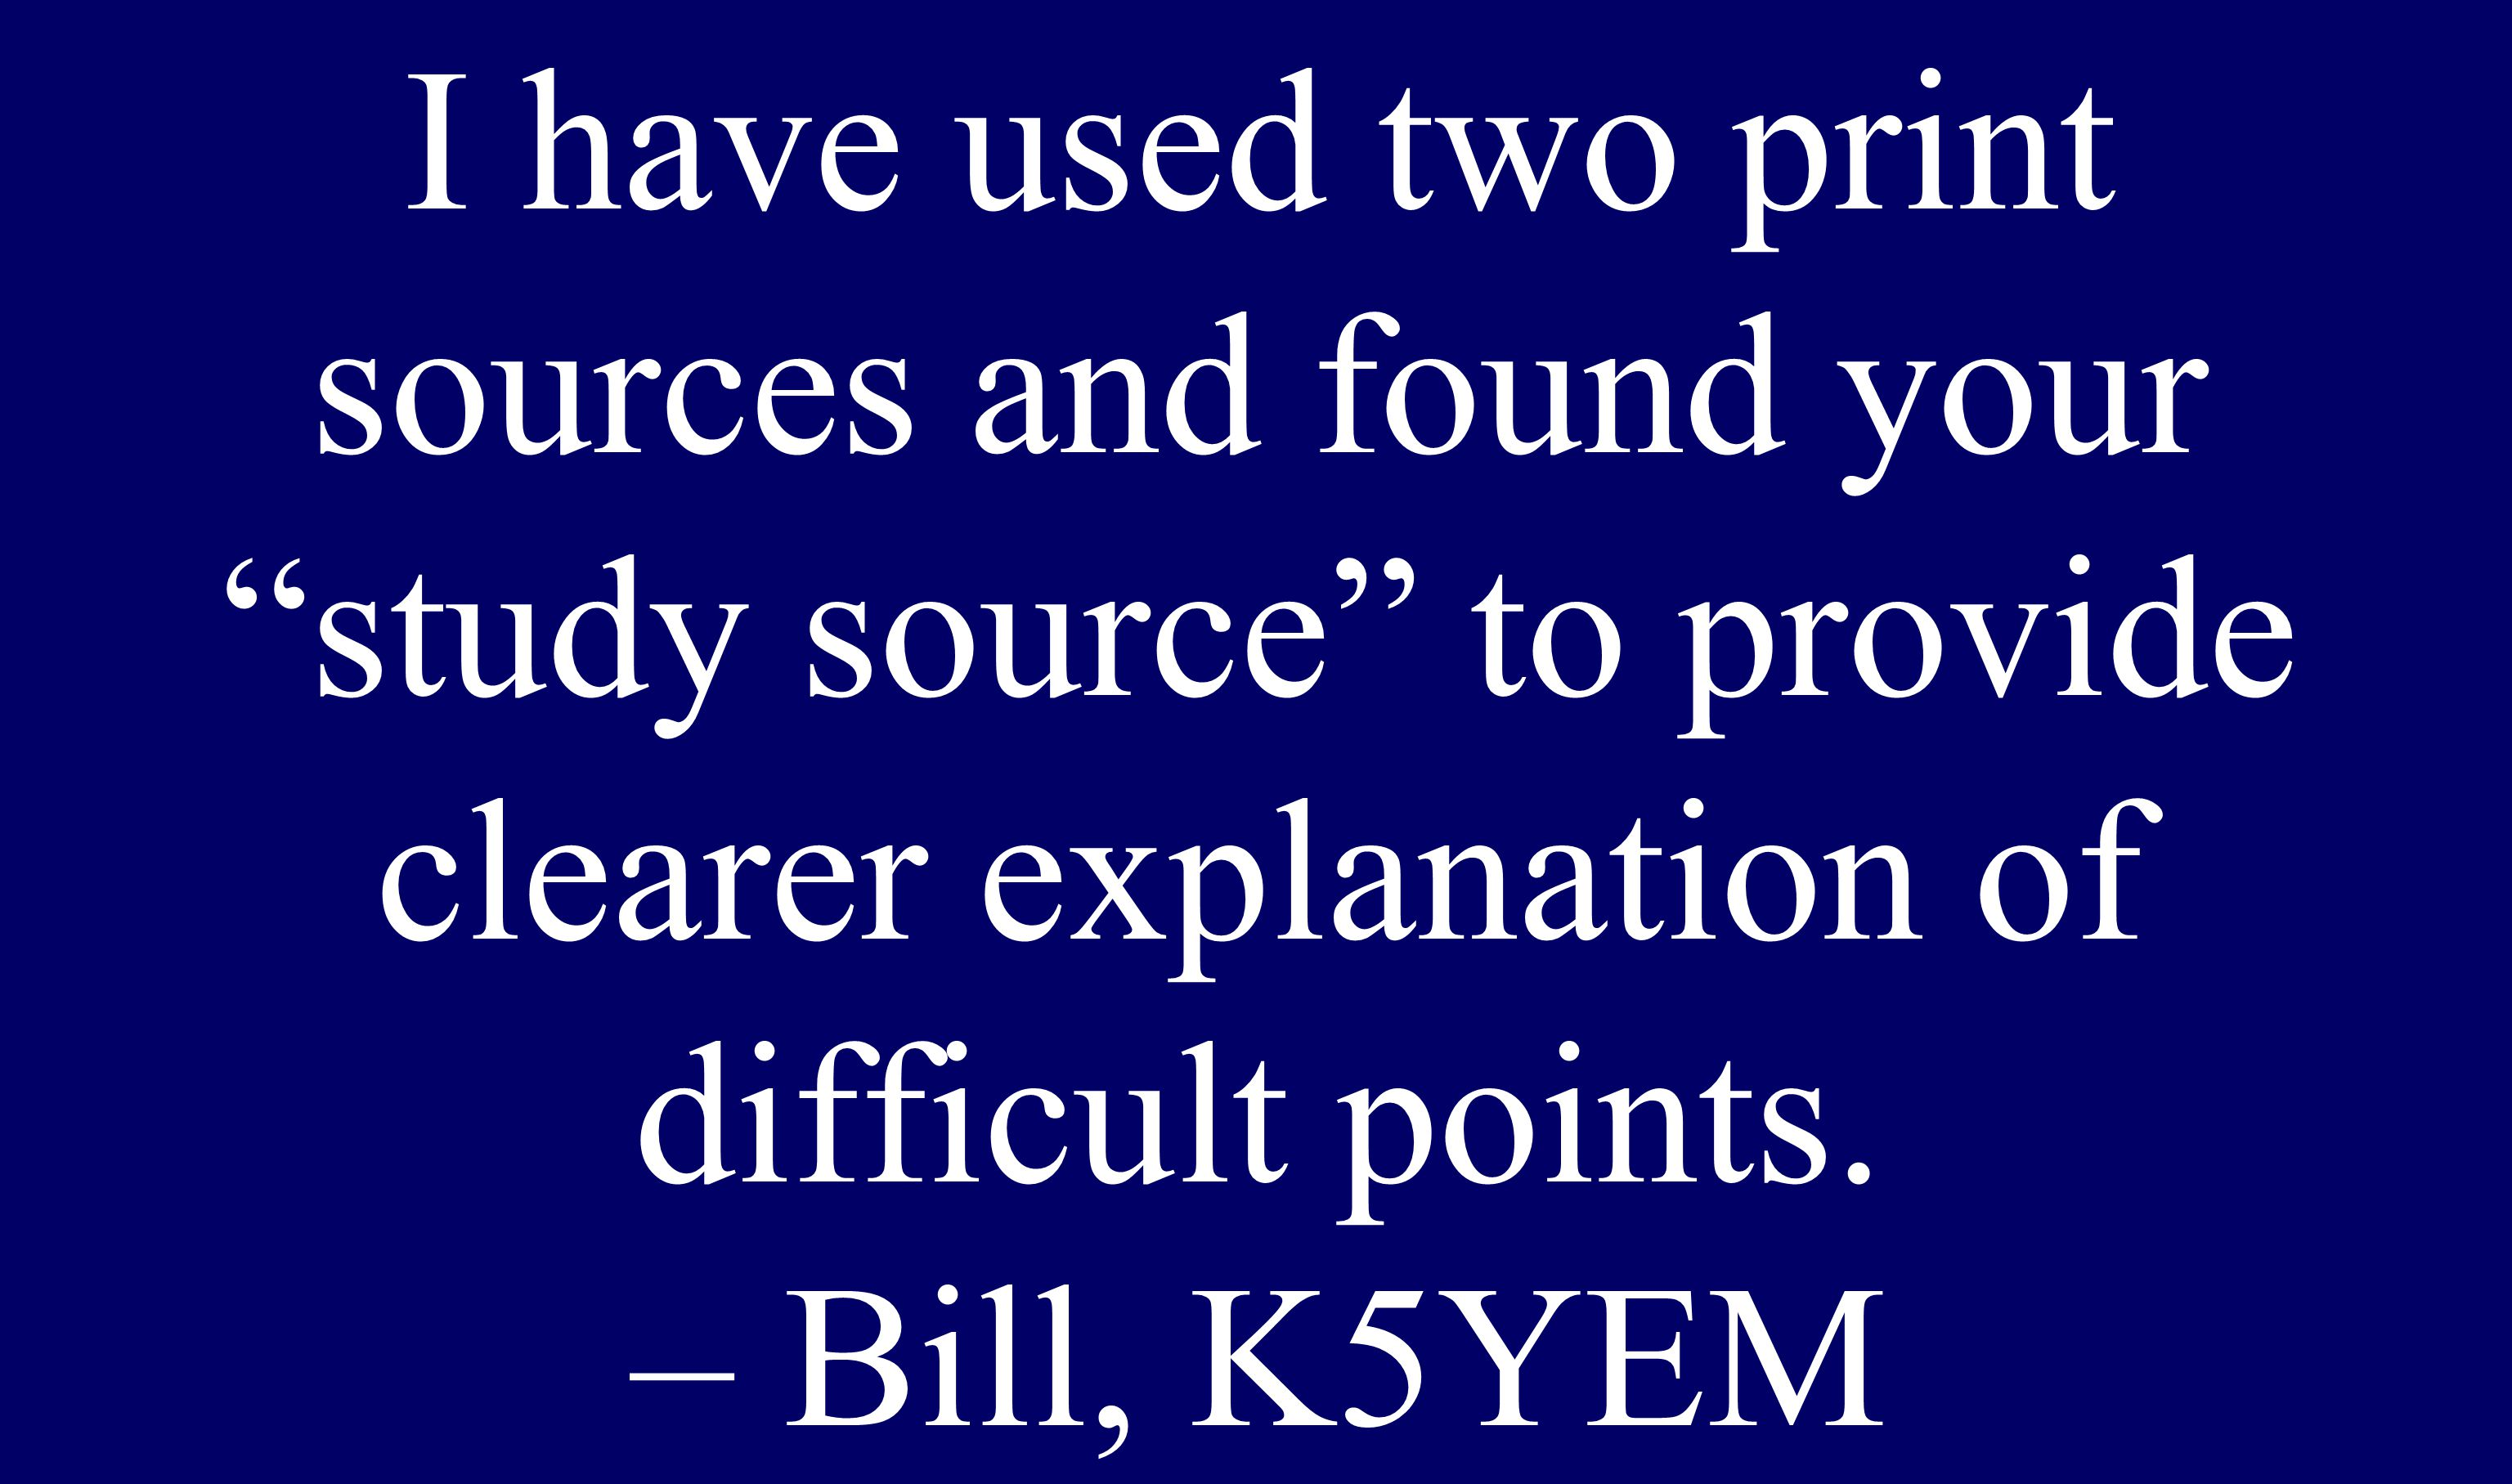 """I have used two print sources and found your """"study source"""" to provide clearer explanation of difficult points. – Bill, K5YEM"""